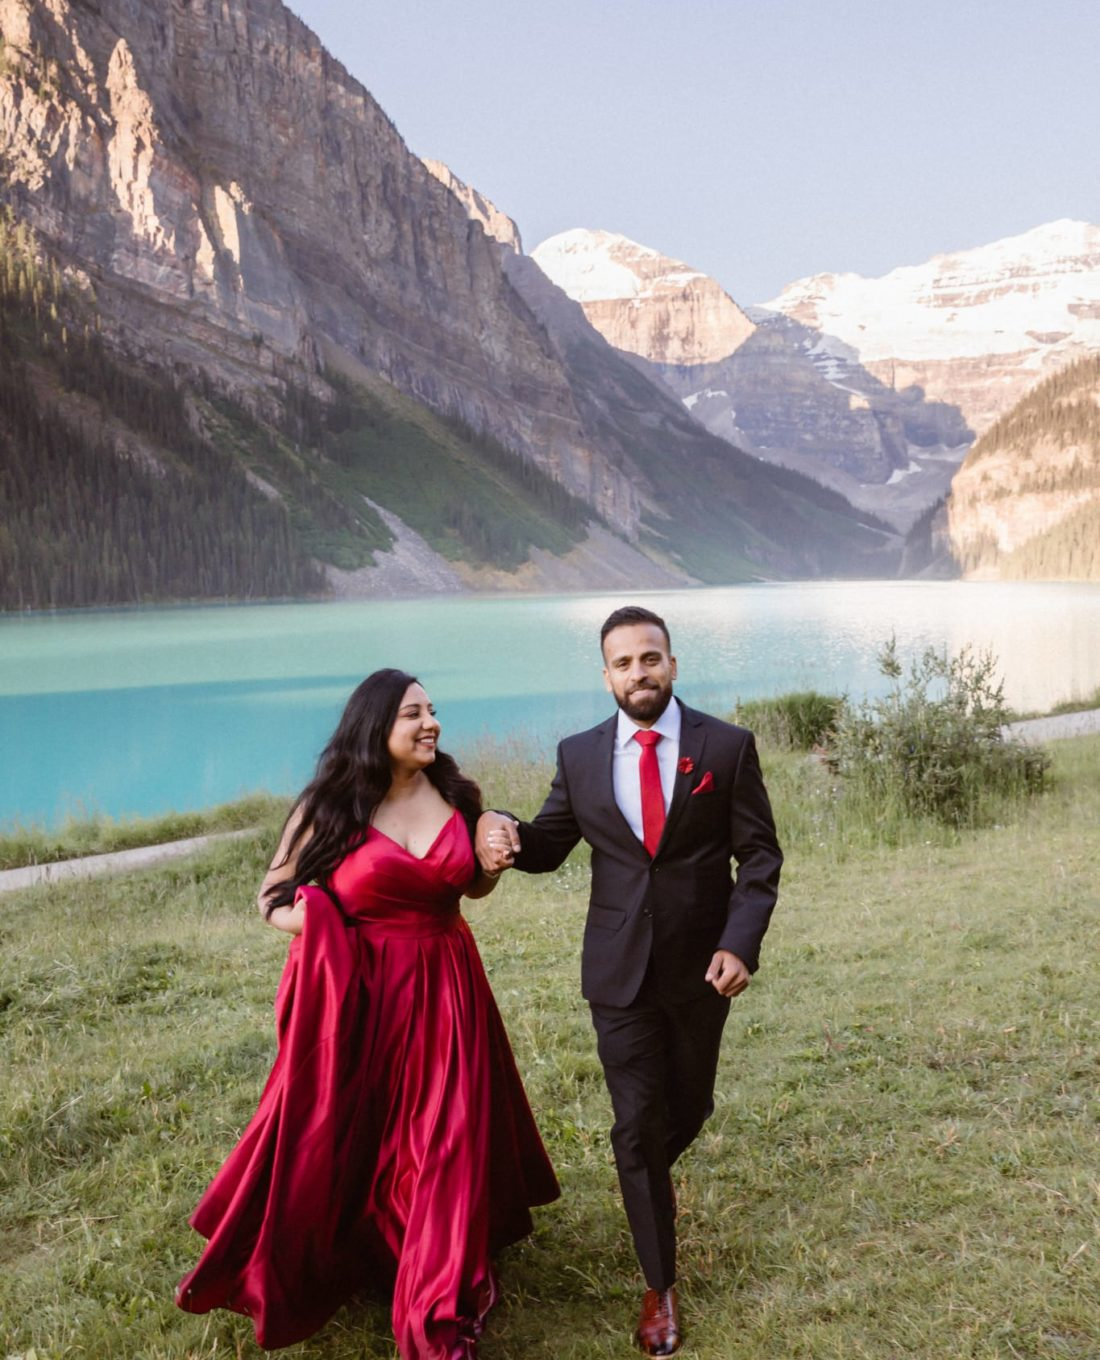 An engaged couple running together at Lake Louise. She is wearing a a red dress and he is wearing a suit with red tie